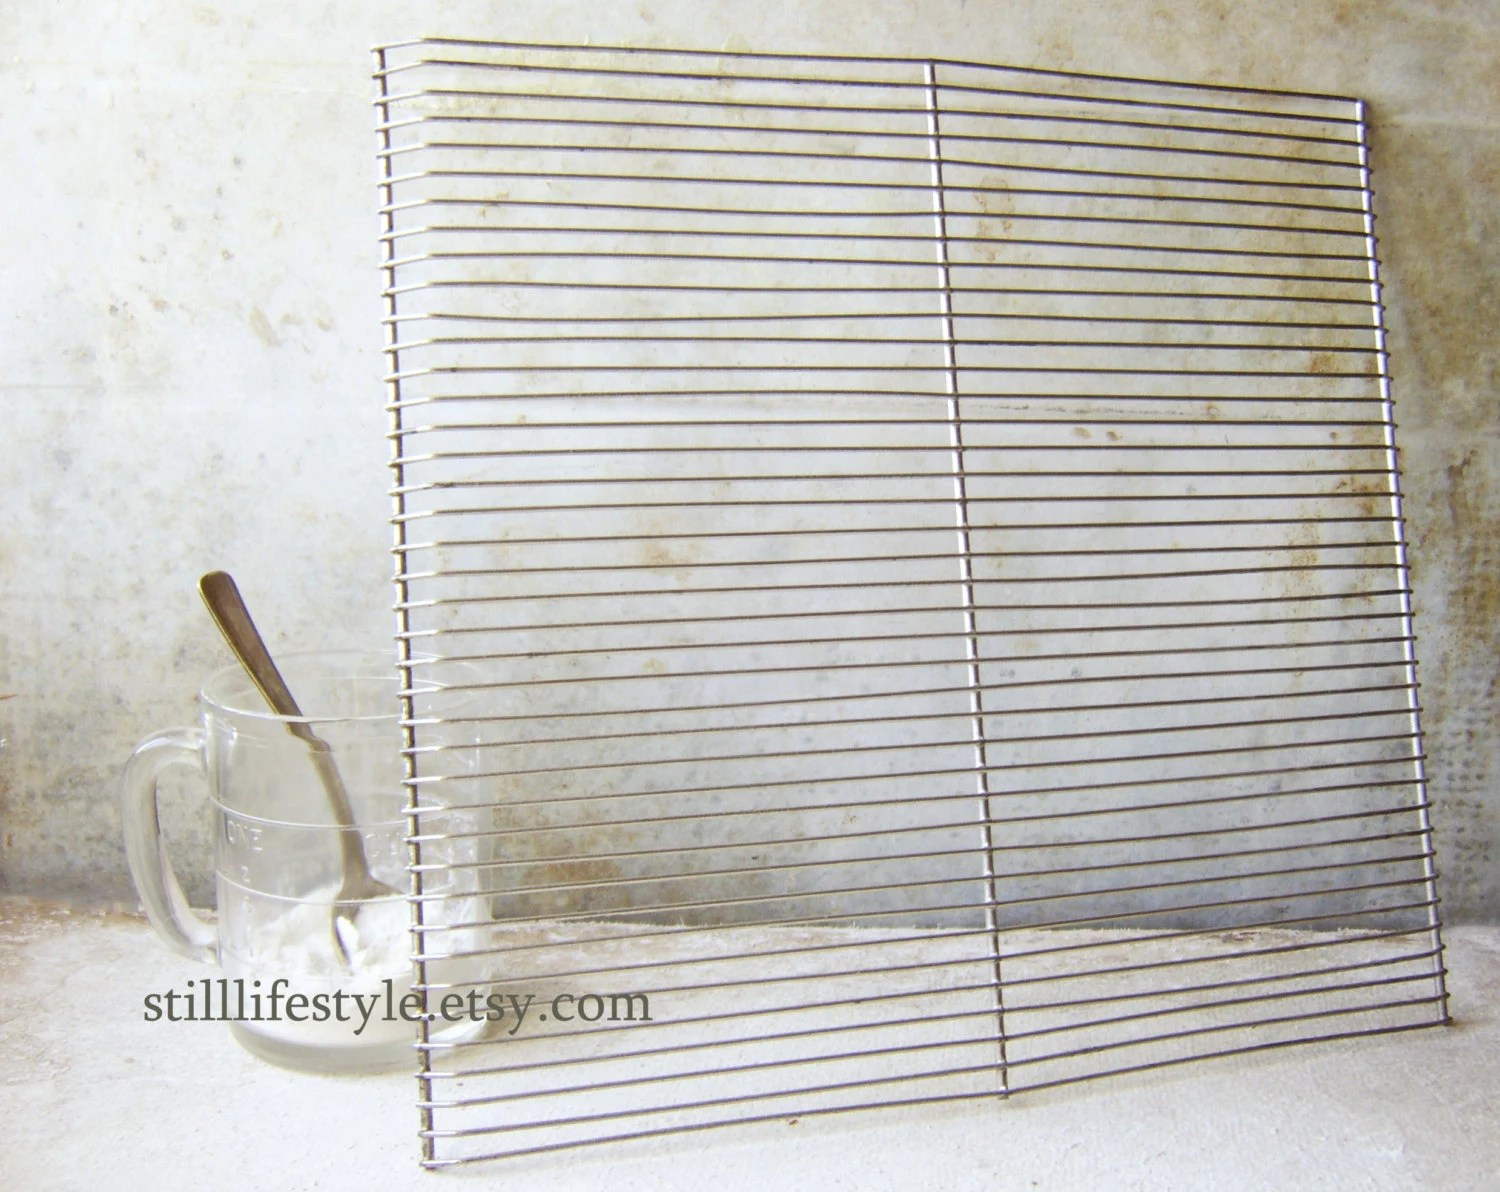 Vintage Wire Cake Cooling Rack Pastry Icing Tray Narrow Wire